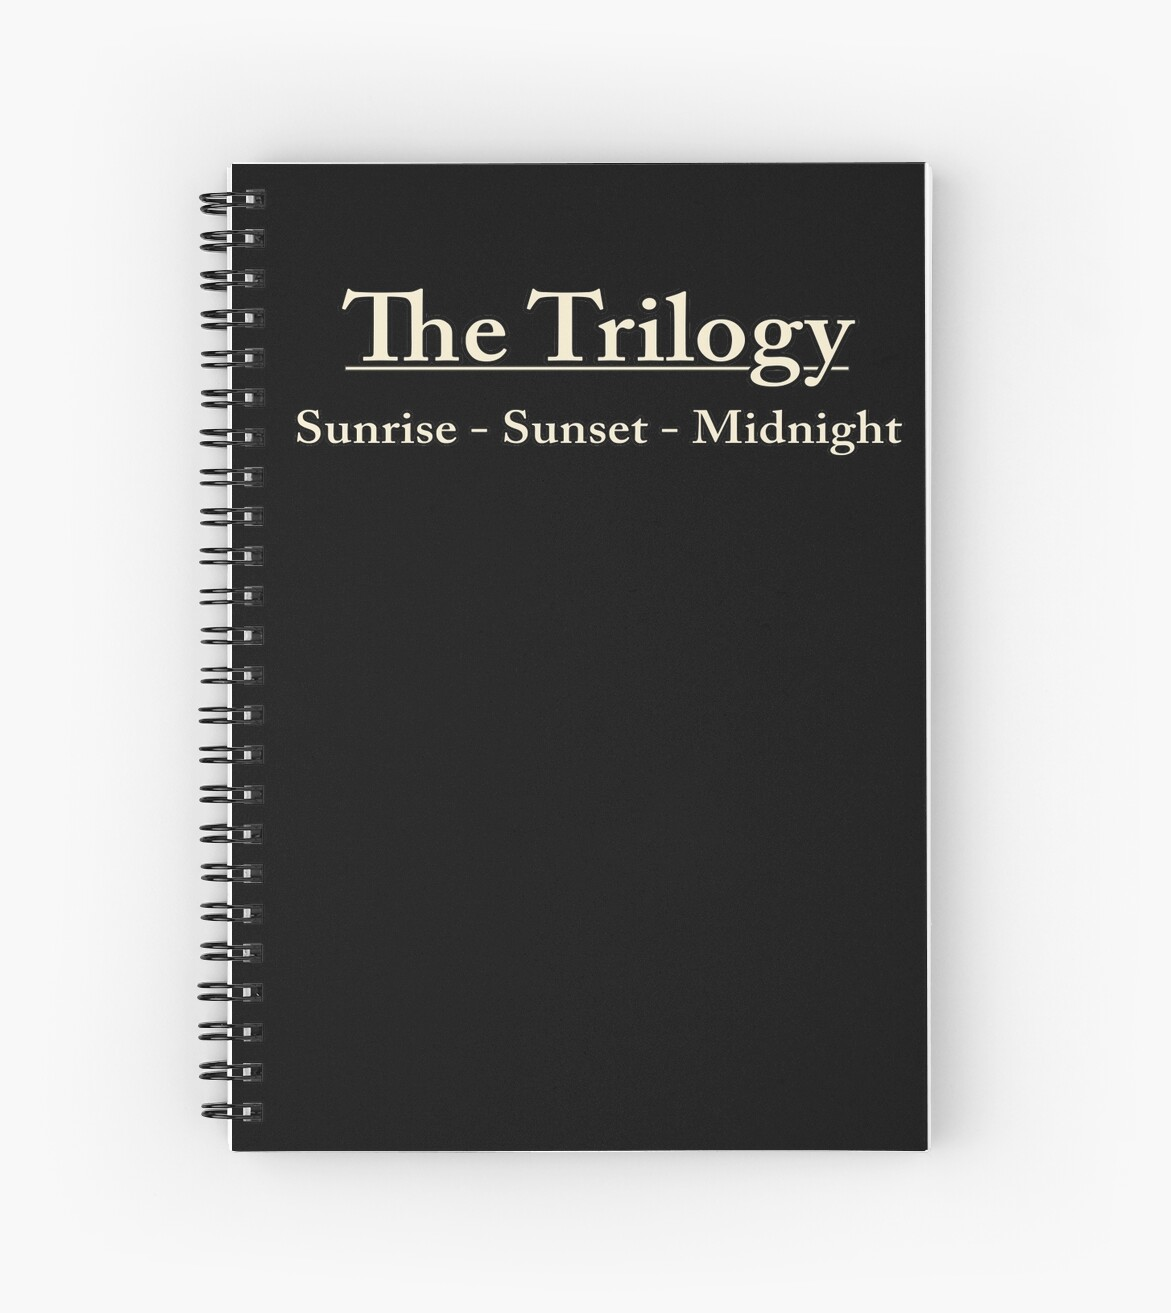 The Trilogy by thefilmmagazine